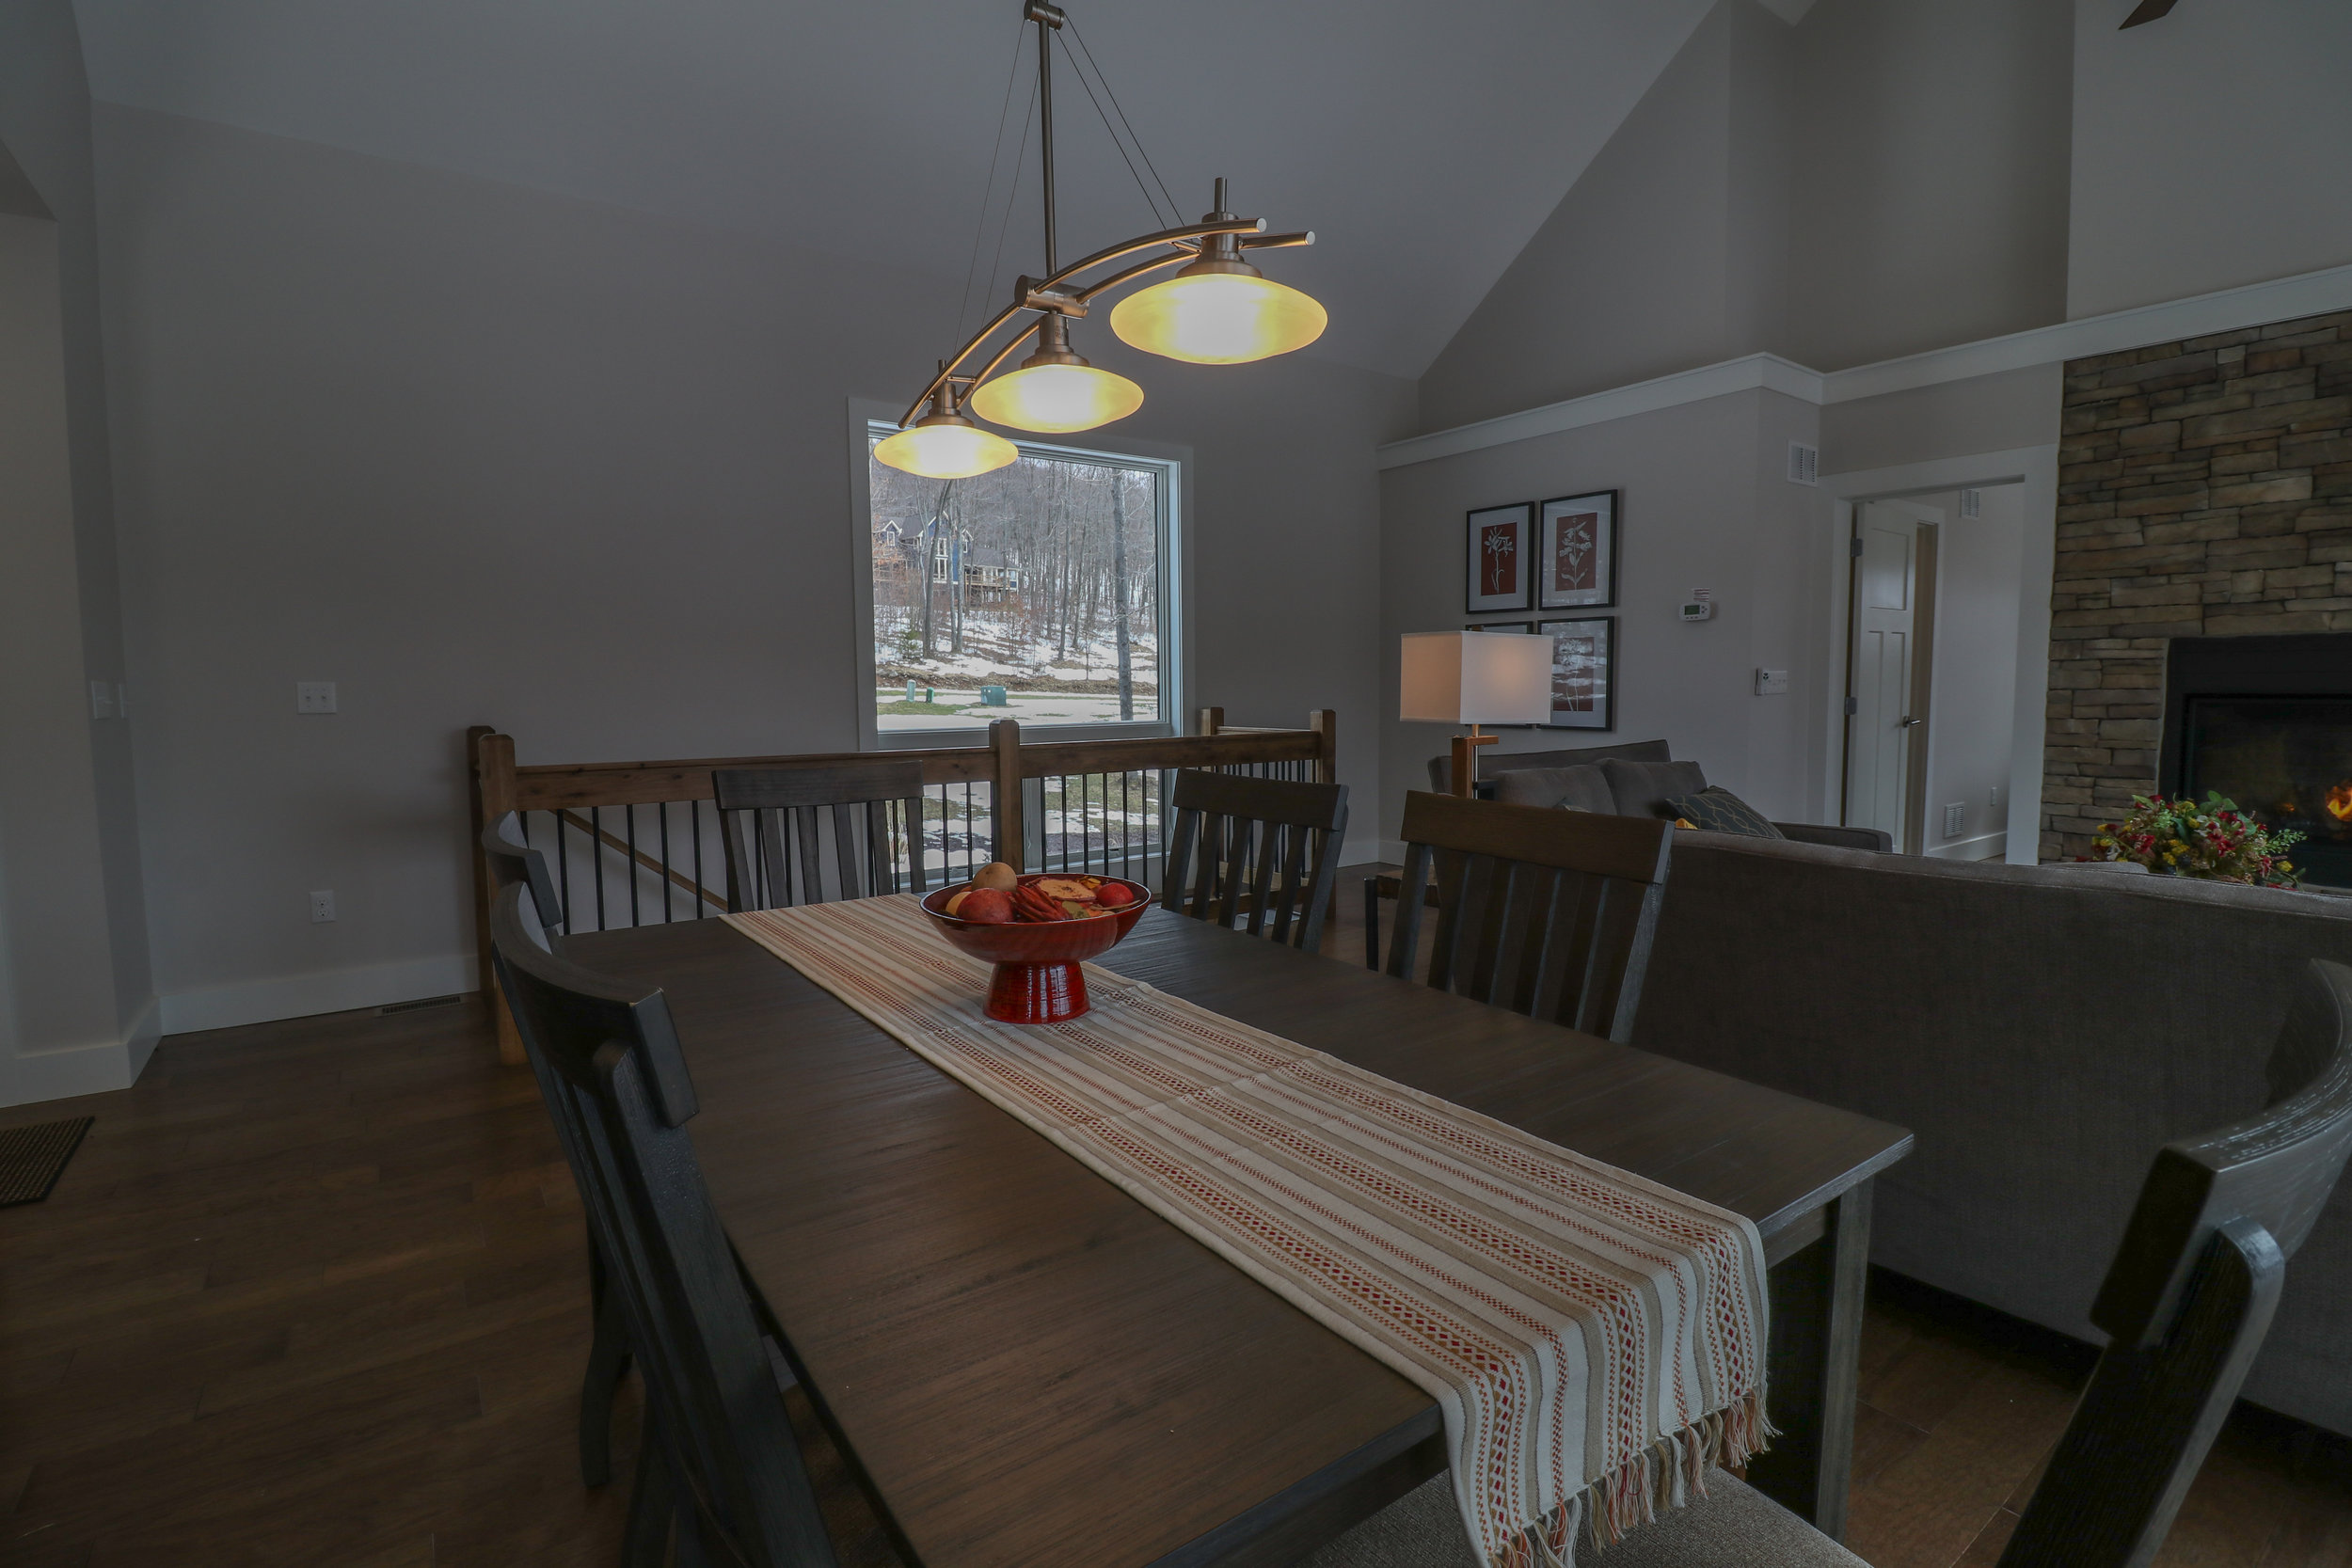 gosnell_builders_home_for_sale_ridgeview_valley17.jpg